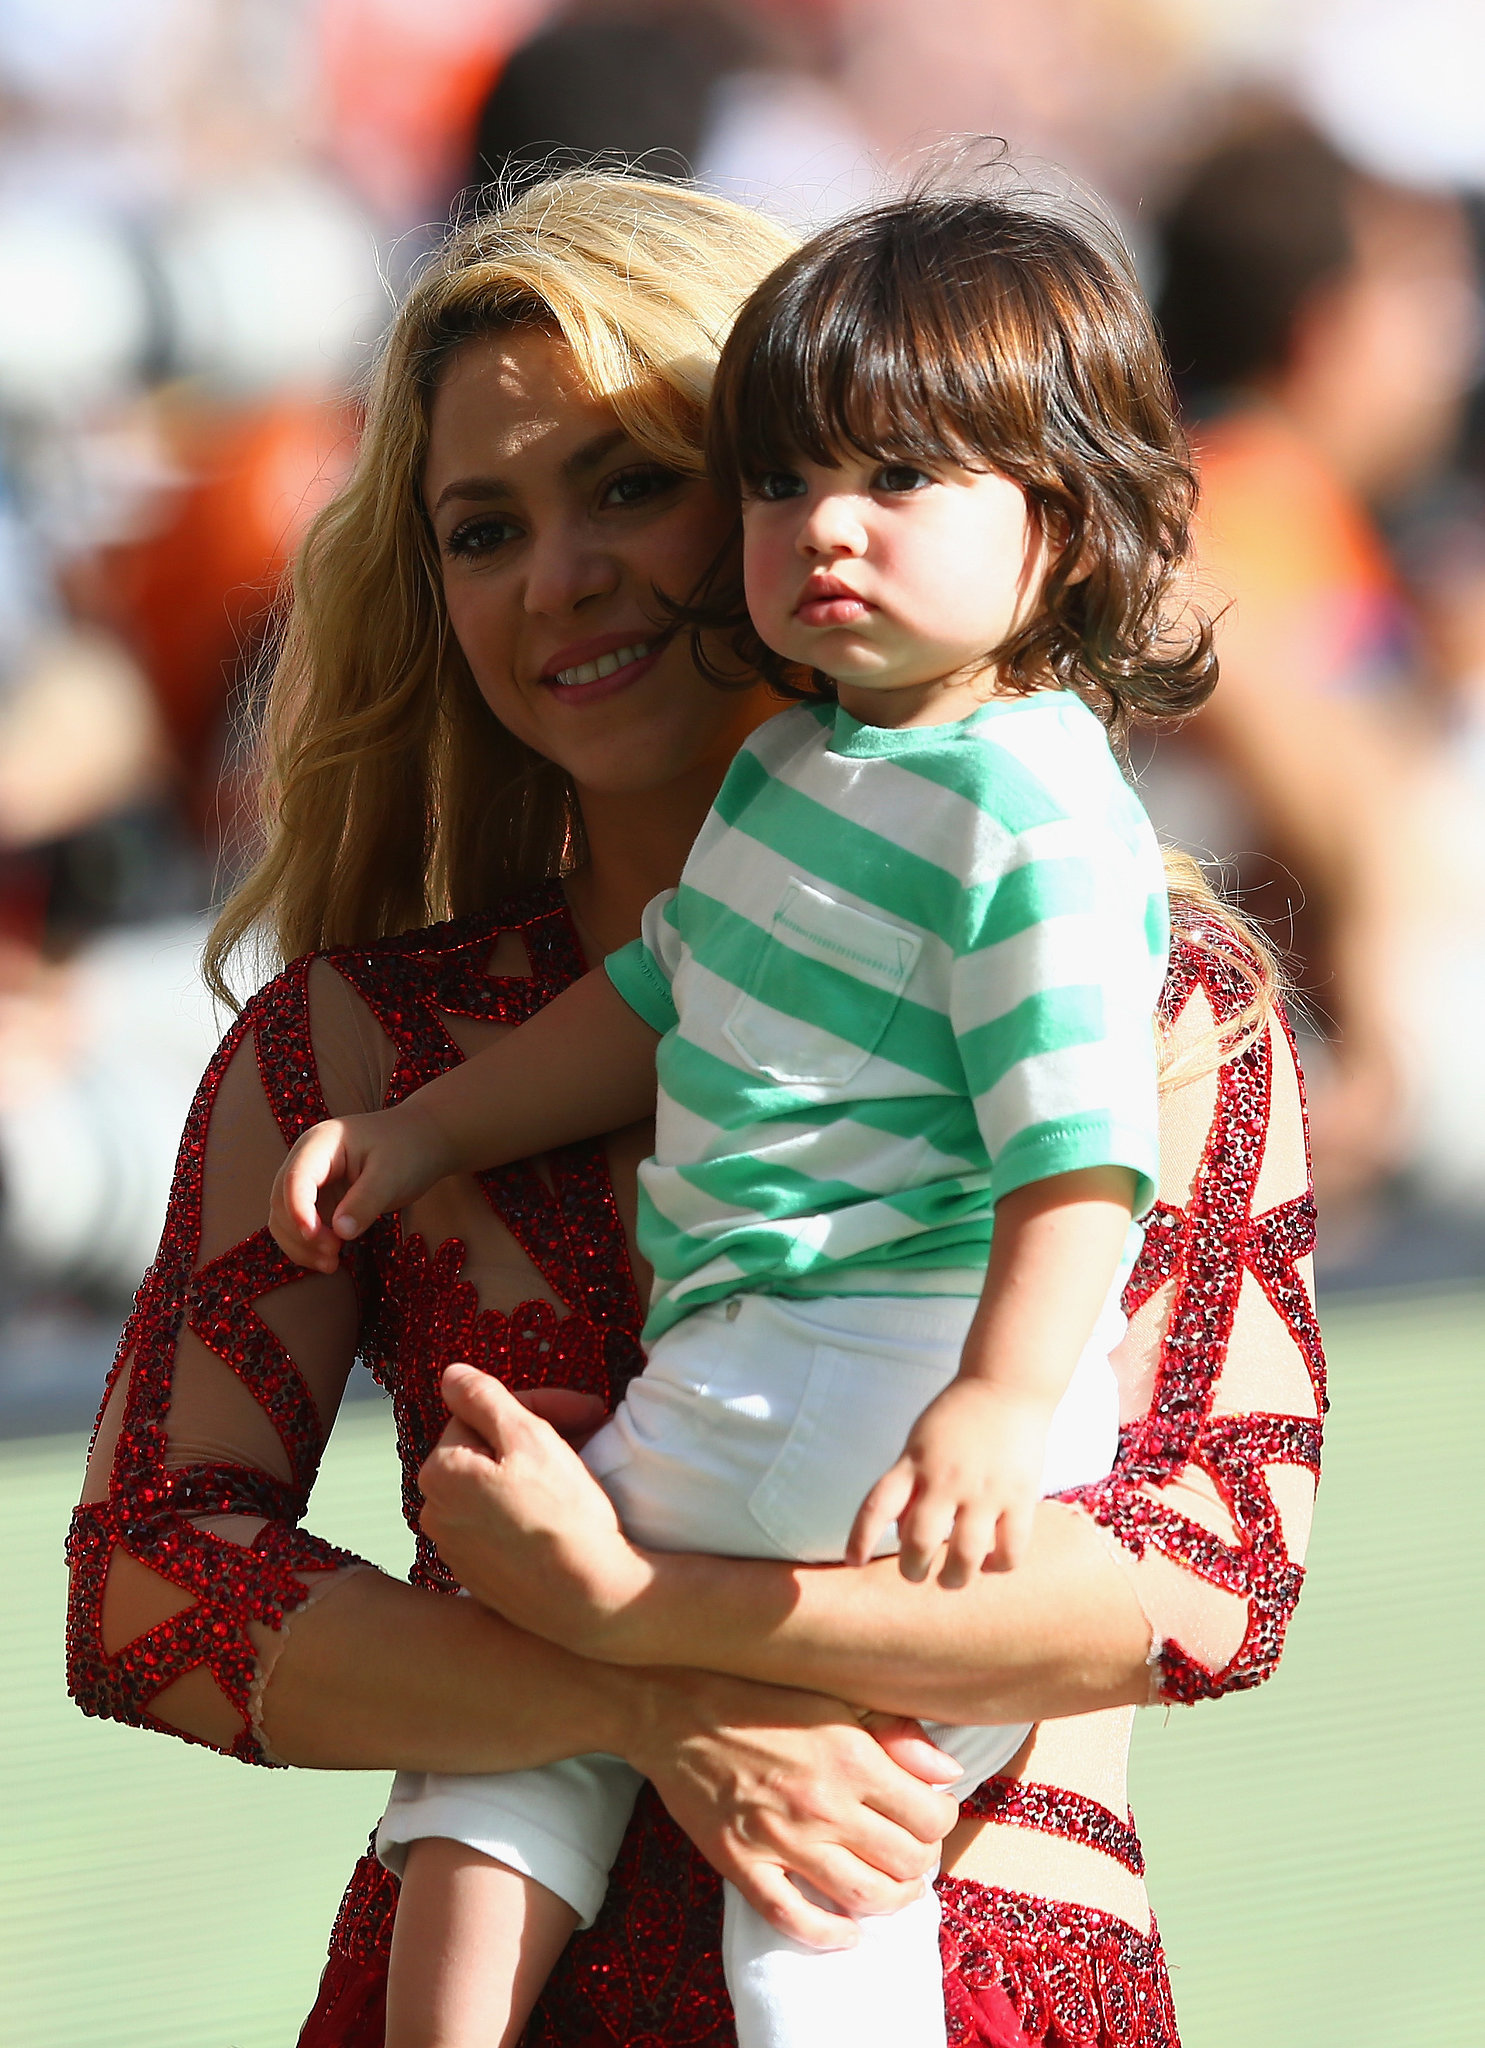 Shakira and her son shared a sweet moment on the field.